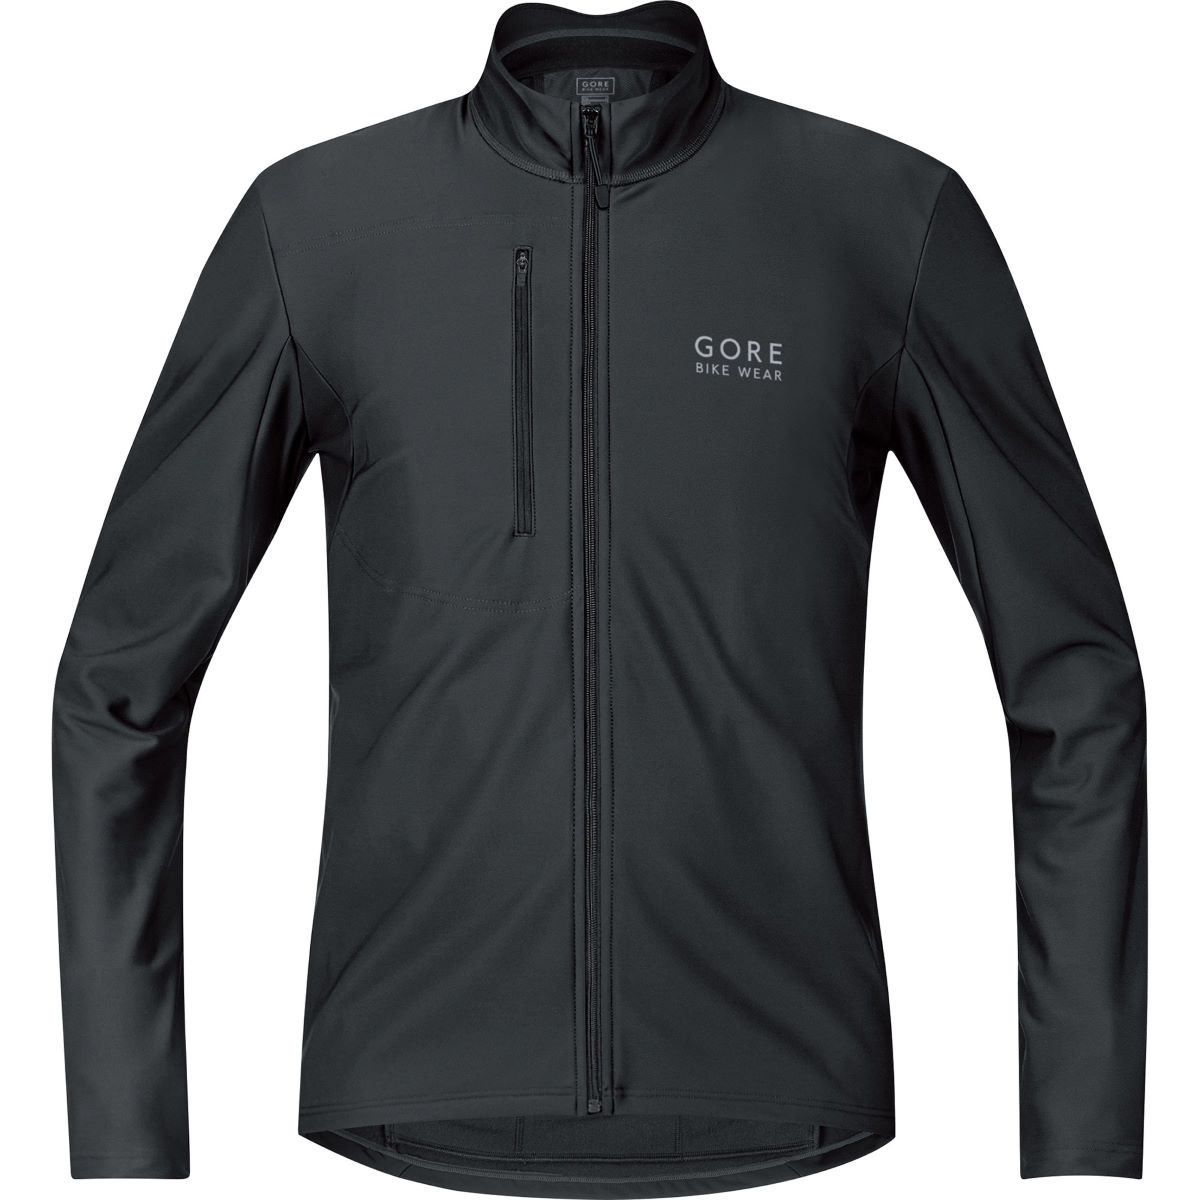 Maillot Gore Bike Wear E Thermo (manches longues) - XL Noir